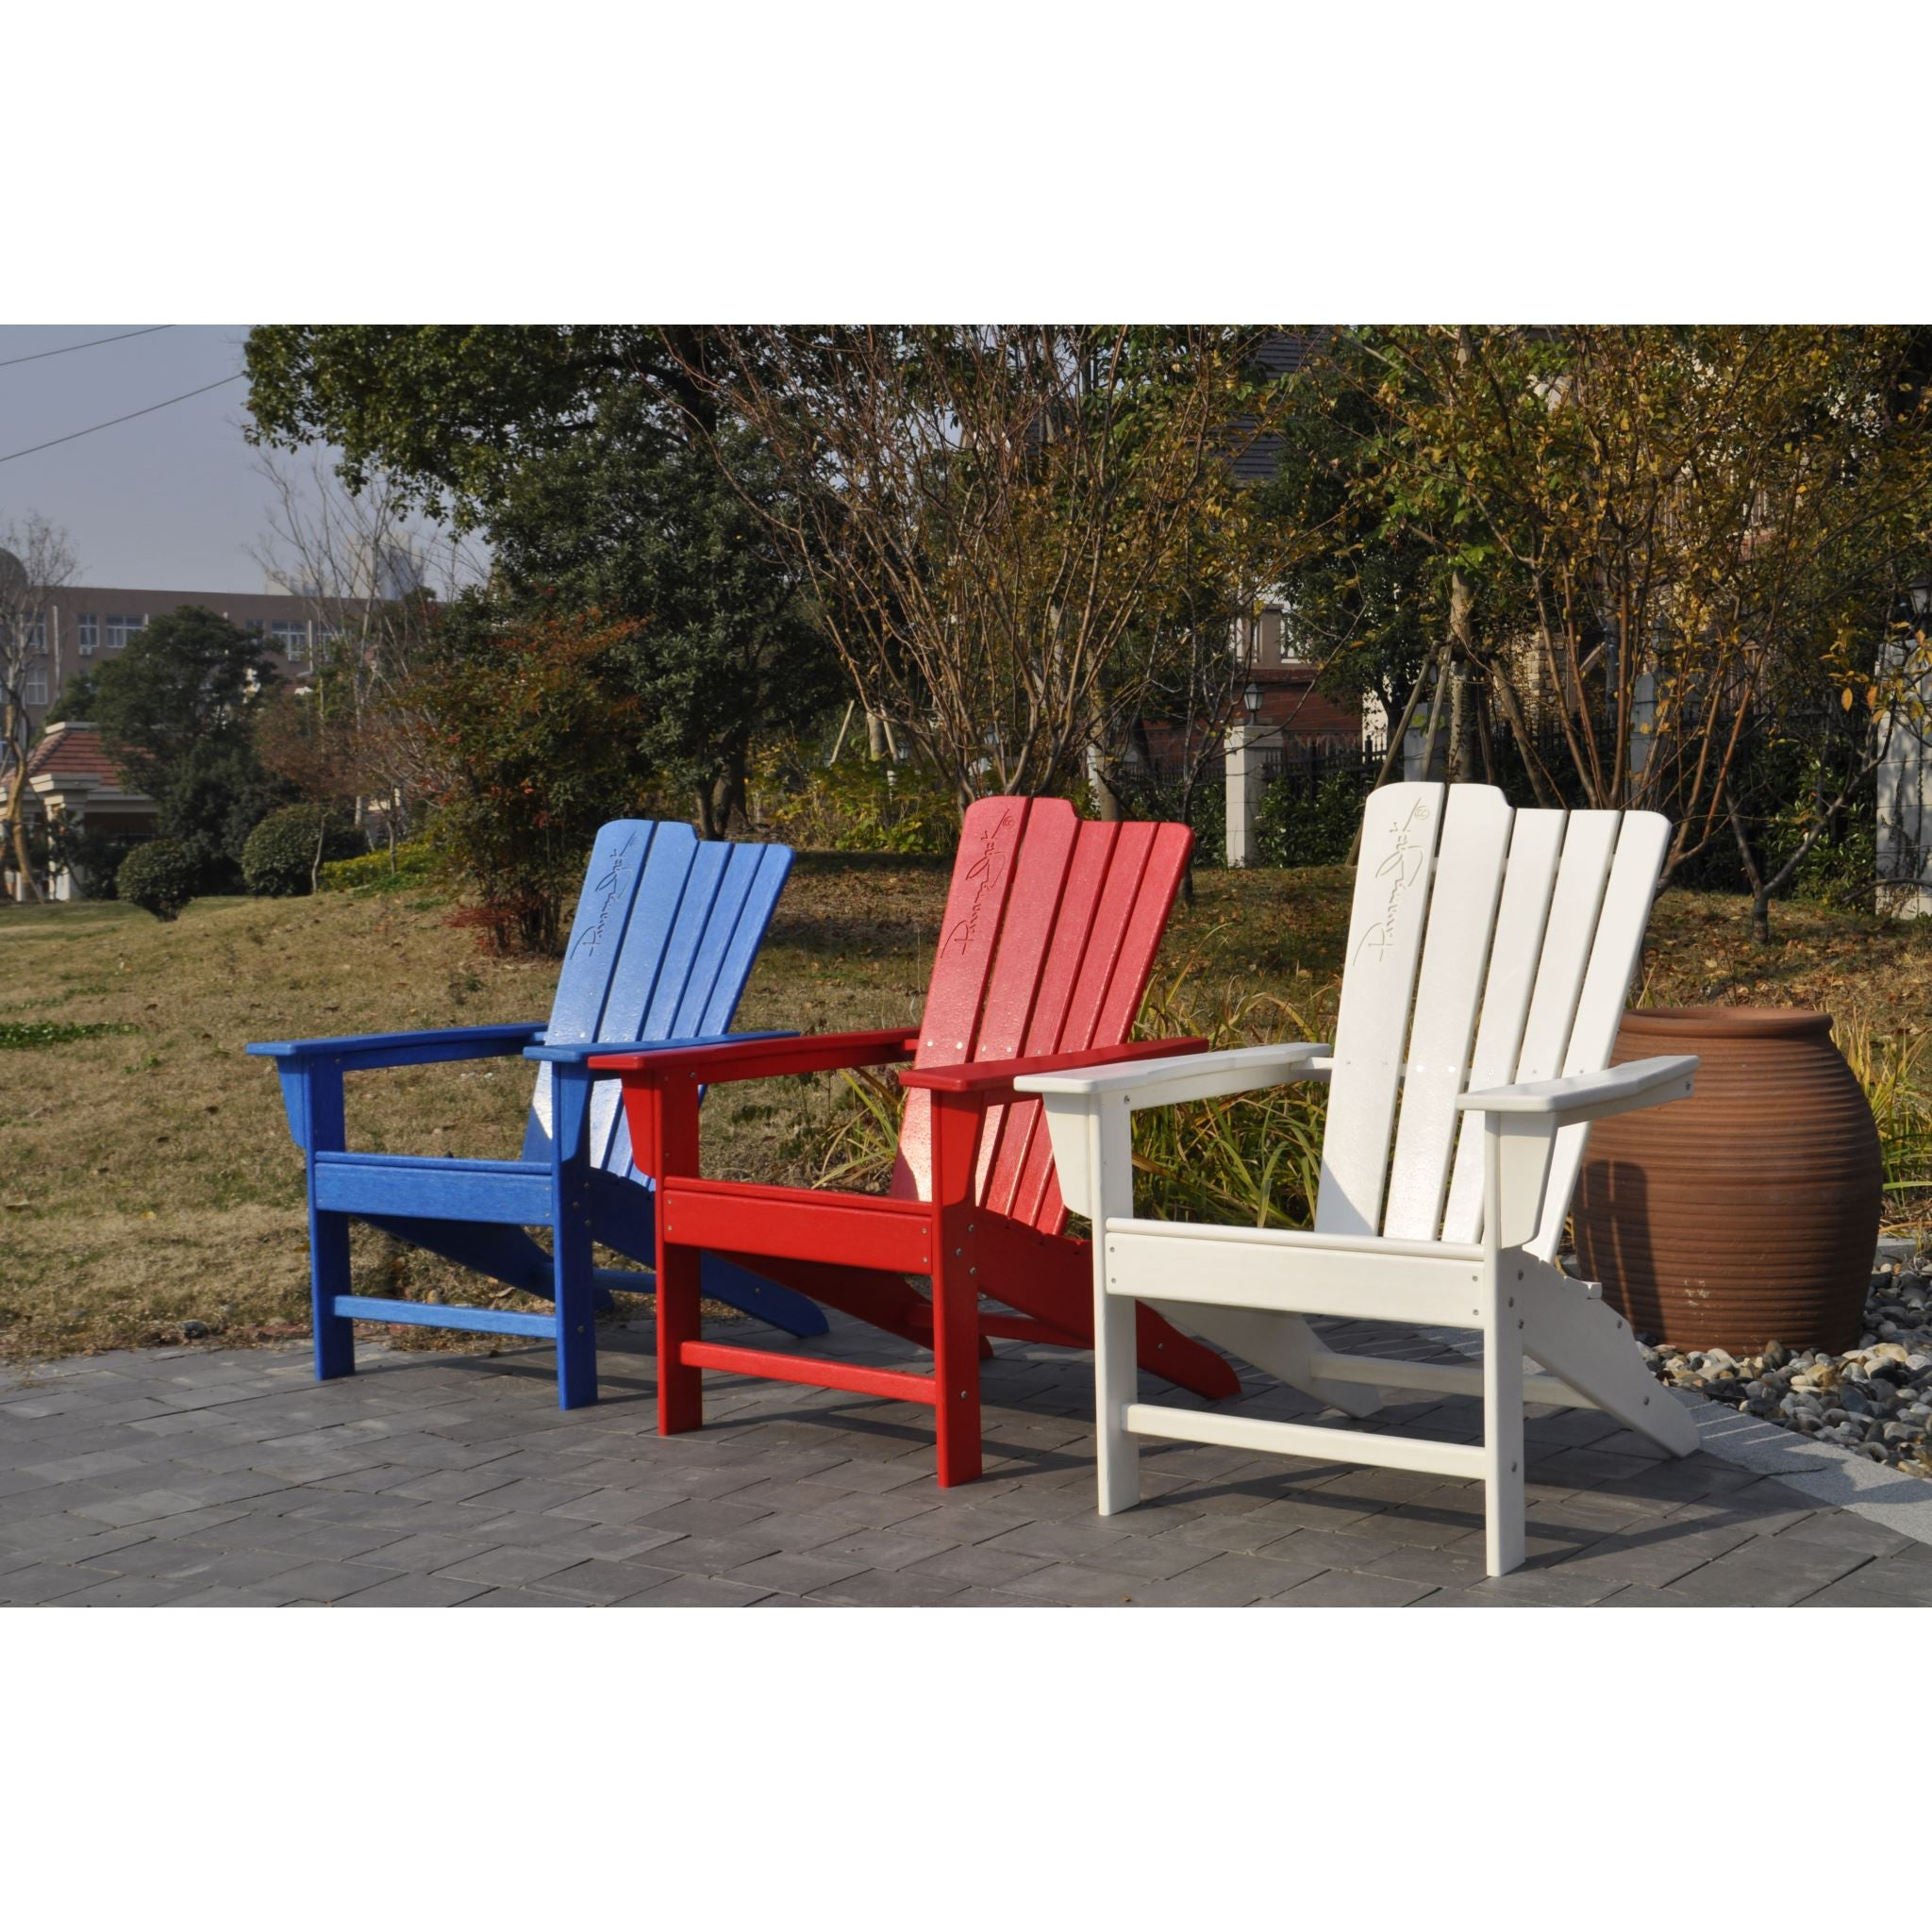 panama jack white outdoor adirondack chair and ottoman set